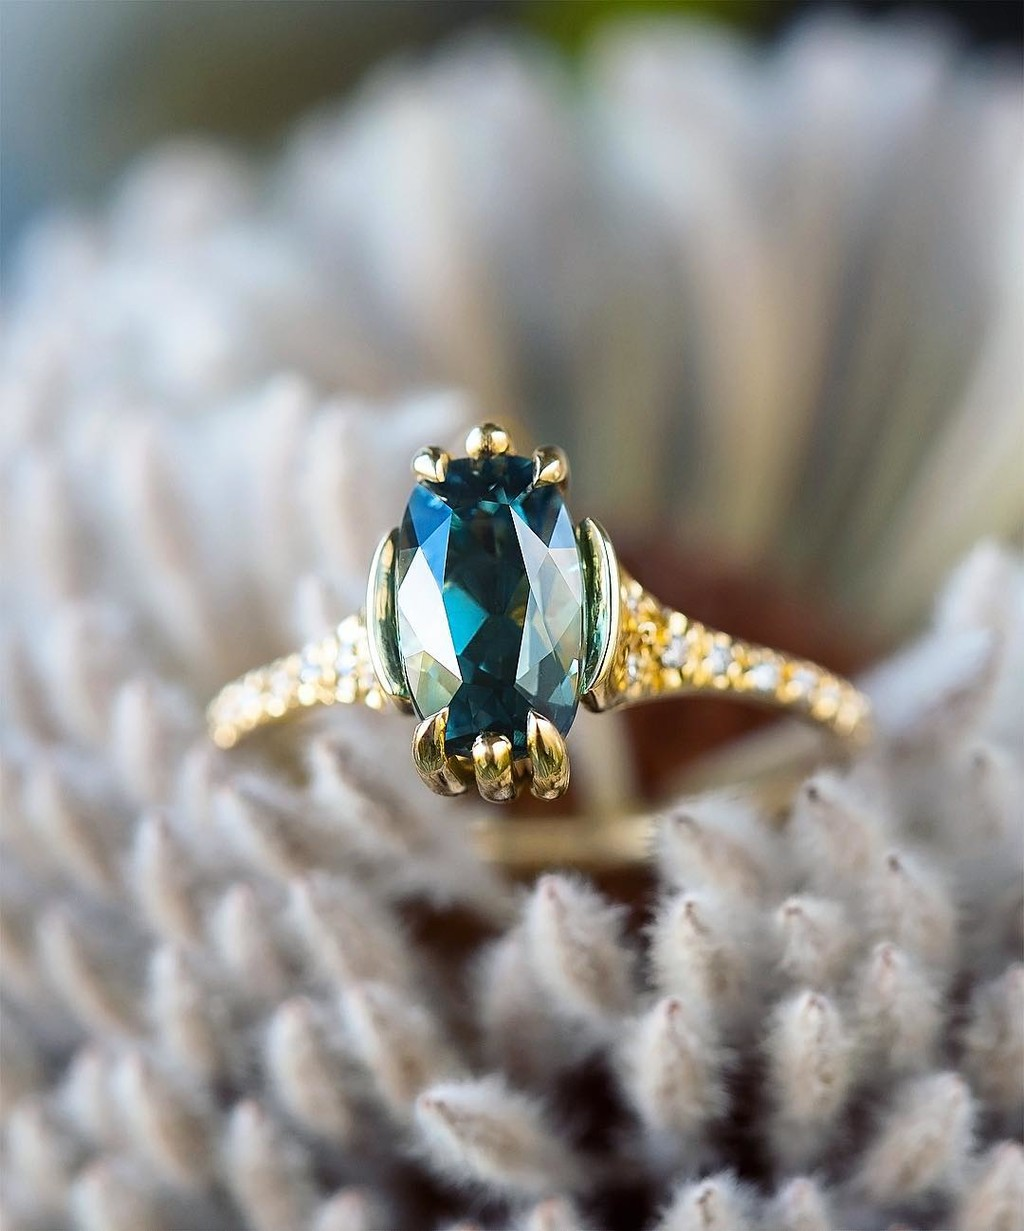 💚💙💚 Simply love at first sight with this elongated Teal colored, no heat, GIA Certified, Montana Sapphire. I loved her so